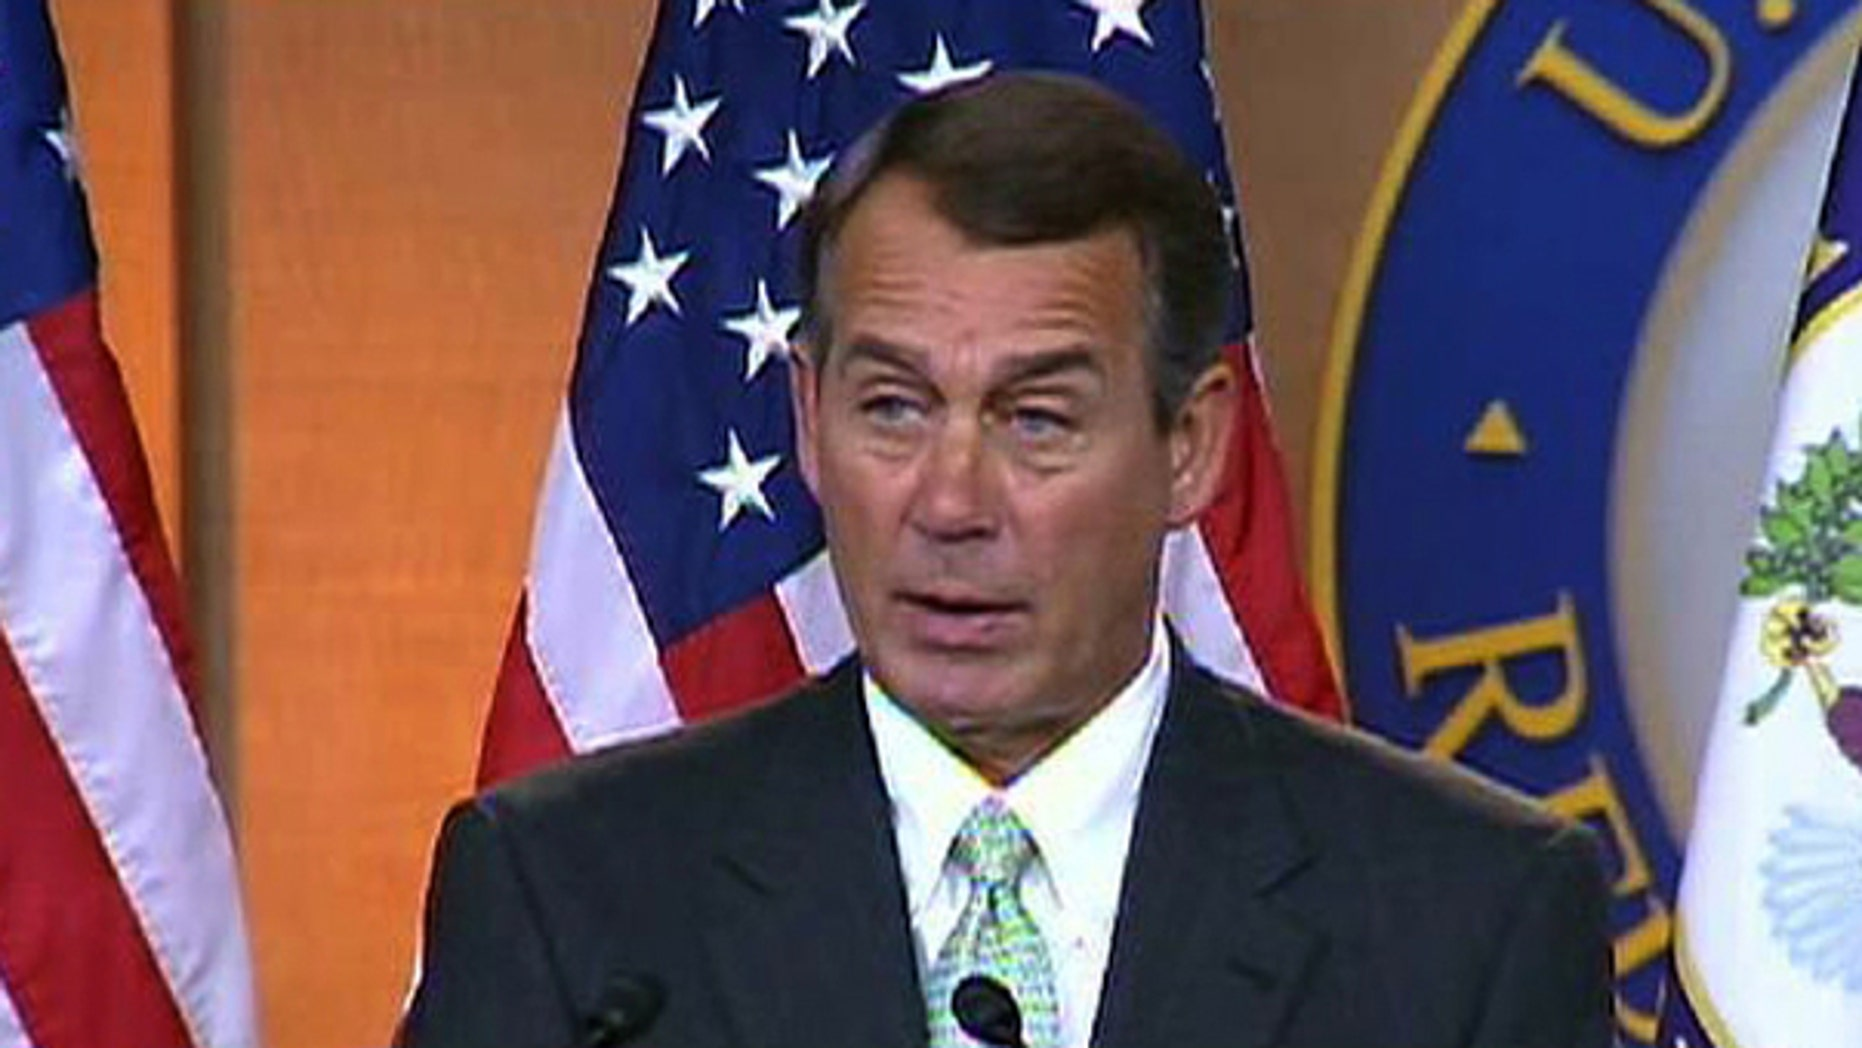 House Minority Leader John Boehner criticizes Democrats' economic proposals at a news conference, Friday, Dec. 4, 2009. (FNC)